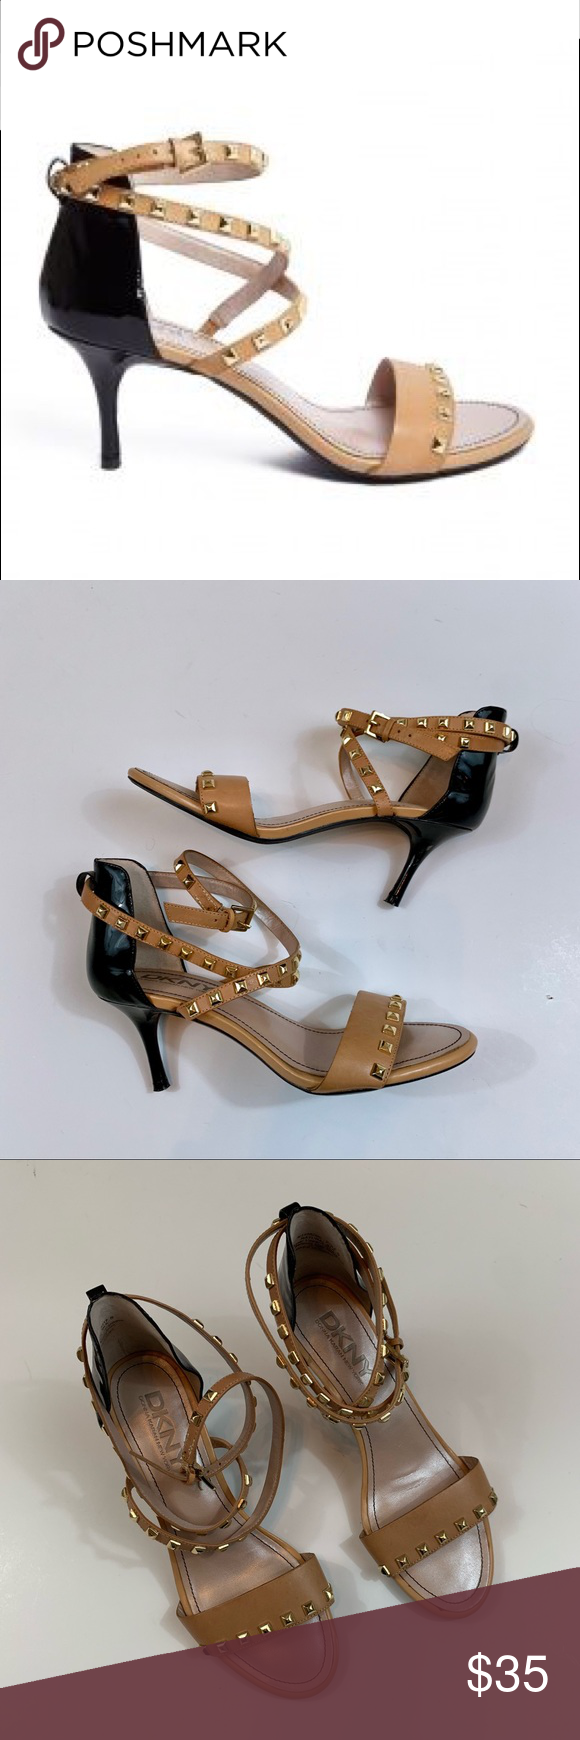 Dkny Elaine Studded Sandals In 2020 Studded Sandals Ankle Wrap Sandals Studded